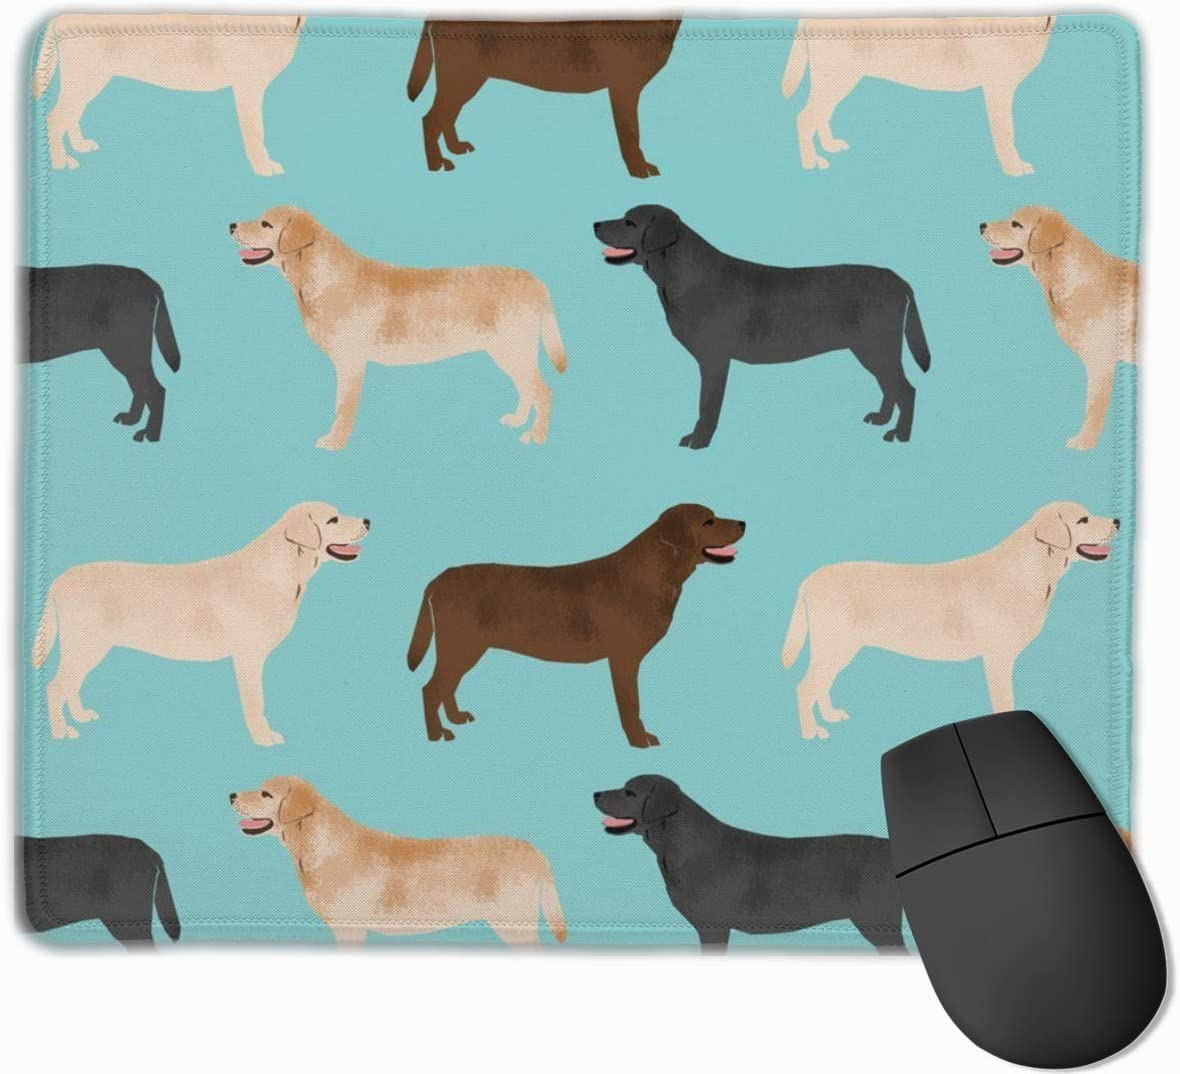 Cute Labradors Yellow Chocolate Black Lab Pet Dogs Mouse Pad Mat with Non-Slip Rubber Base - Gaming Computer Laptop Mousepad for Home Office 9.8×11.8 in